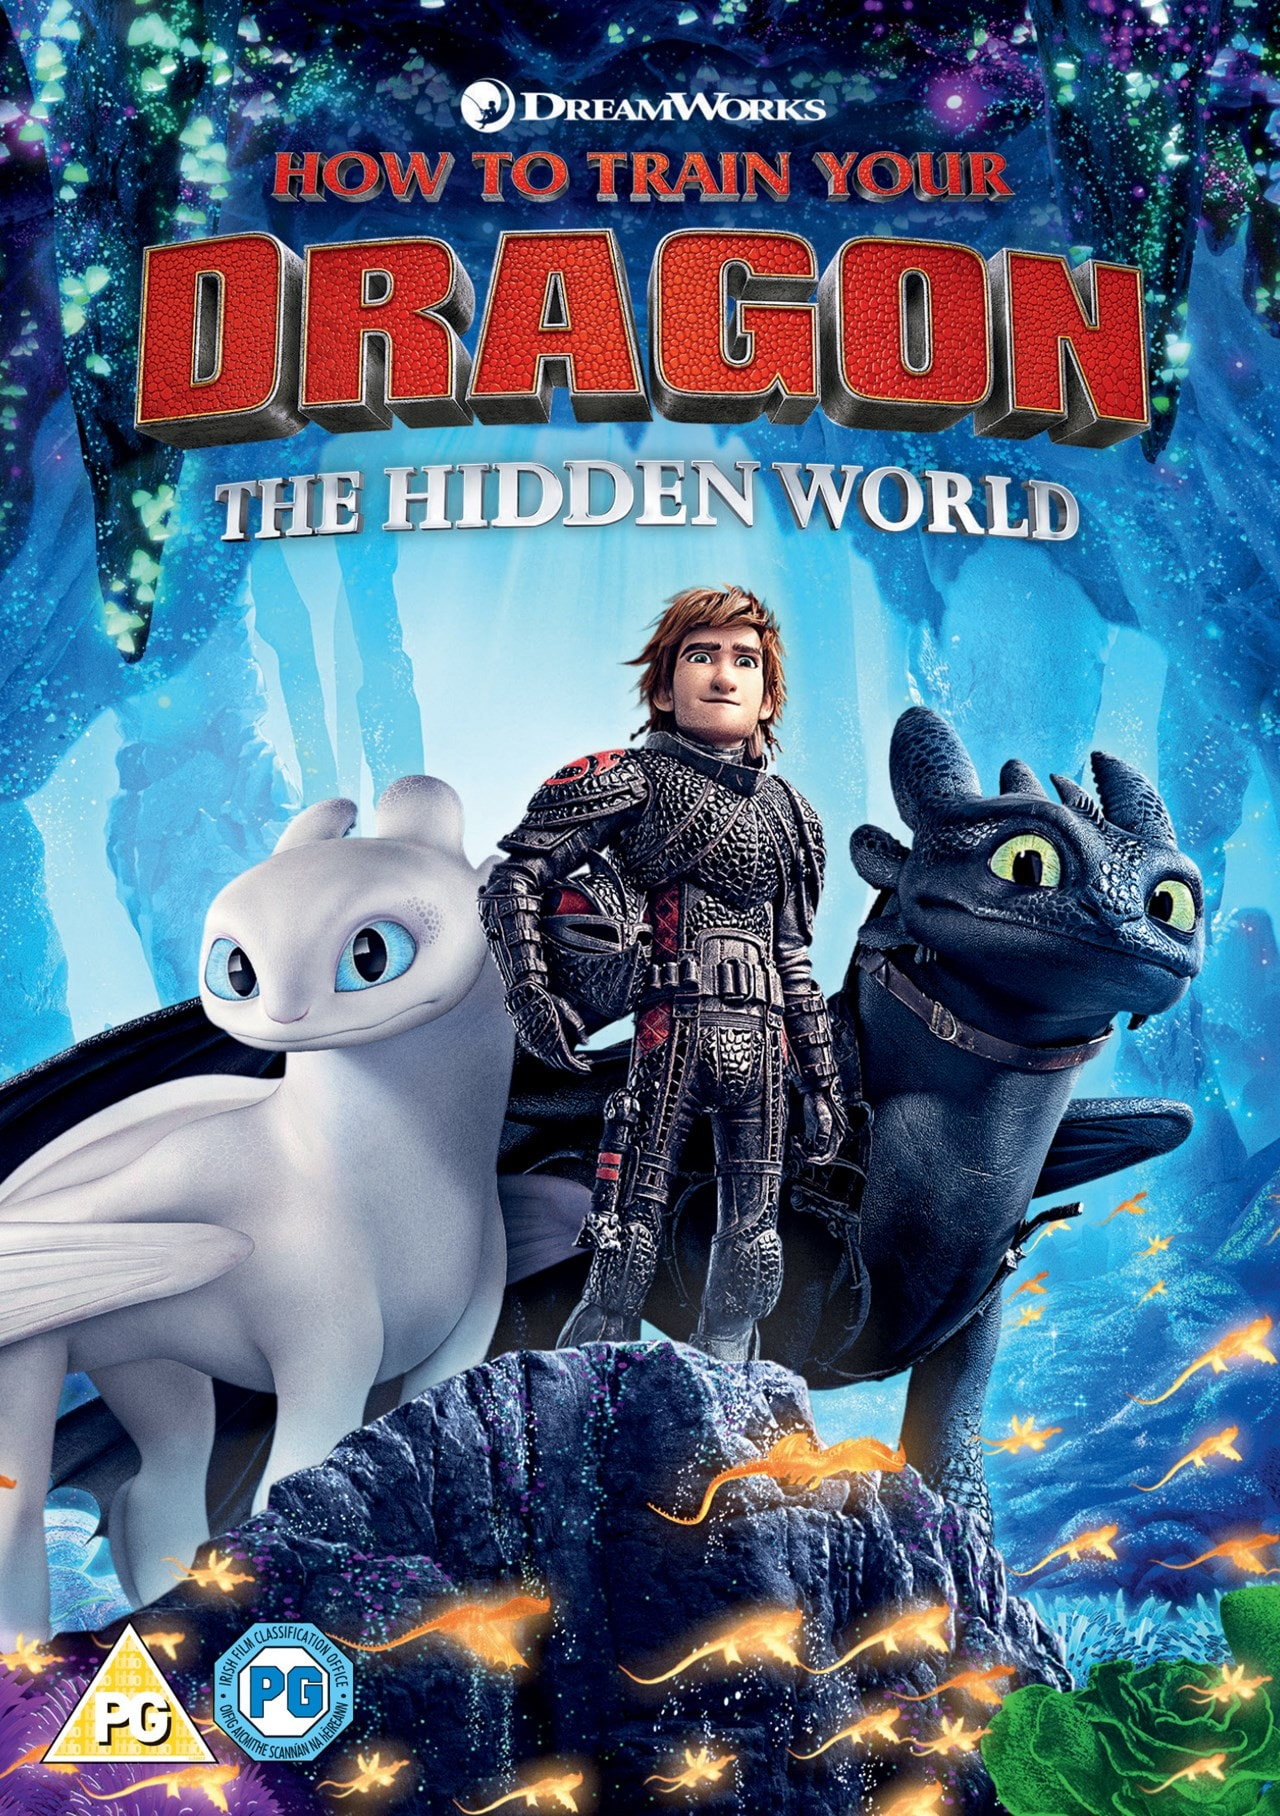 How to Train Your Dragon - The Hidden World - 3